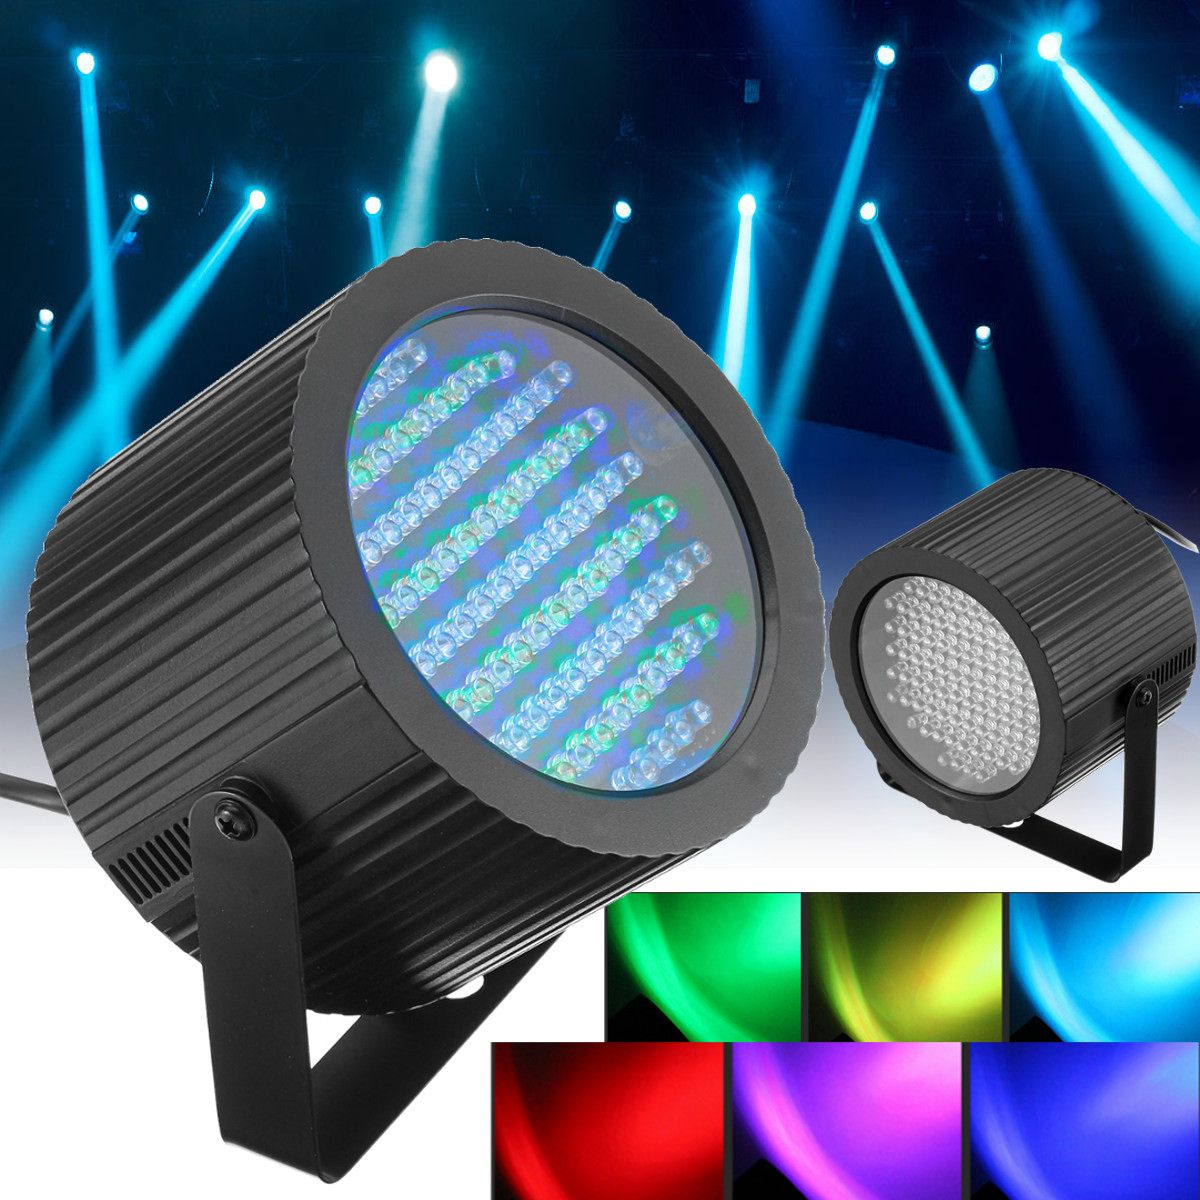 2 Pcs 86 RGB 25W 7 Channels LED Stage Light DMX Laser Projector LED Lamp DJ Disco Club Bar Party Stage Effect Lighting Lights